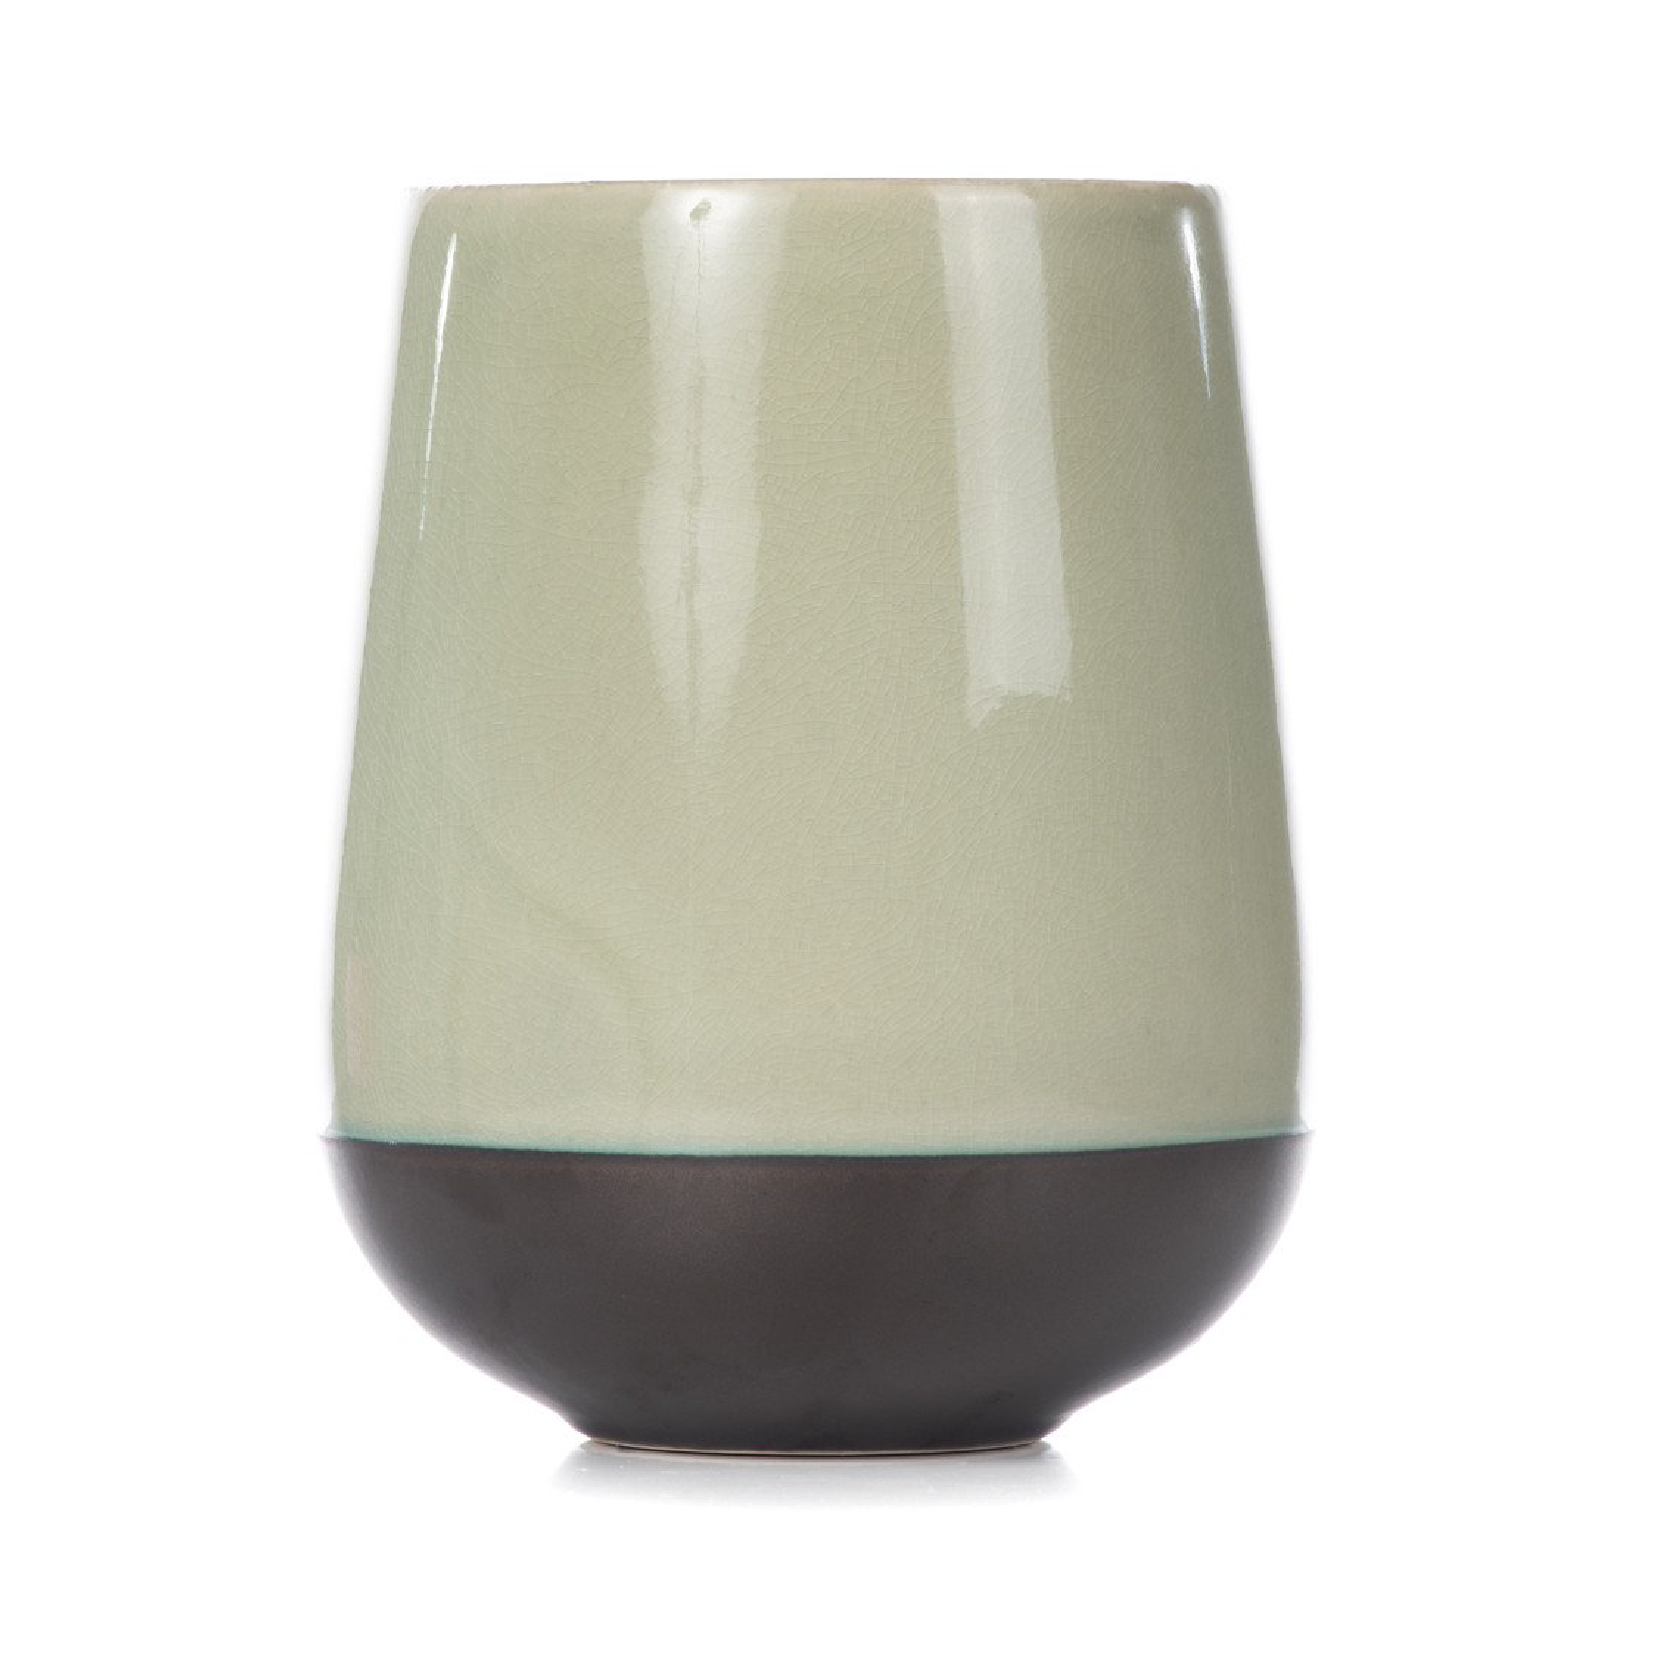 SPLIT Deco Vase(3 Colour Options)